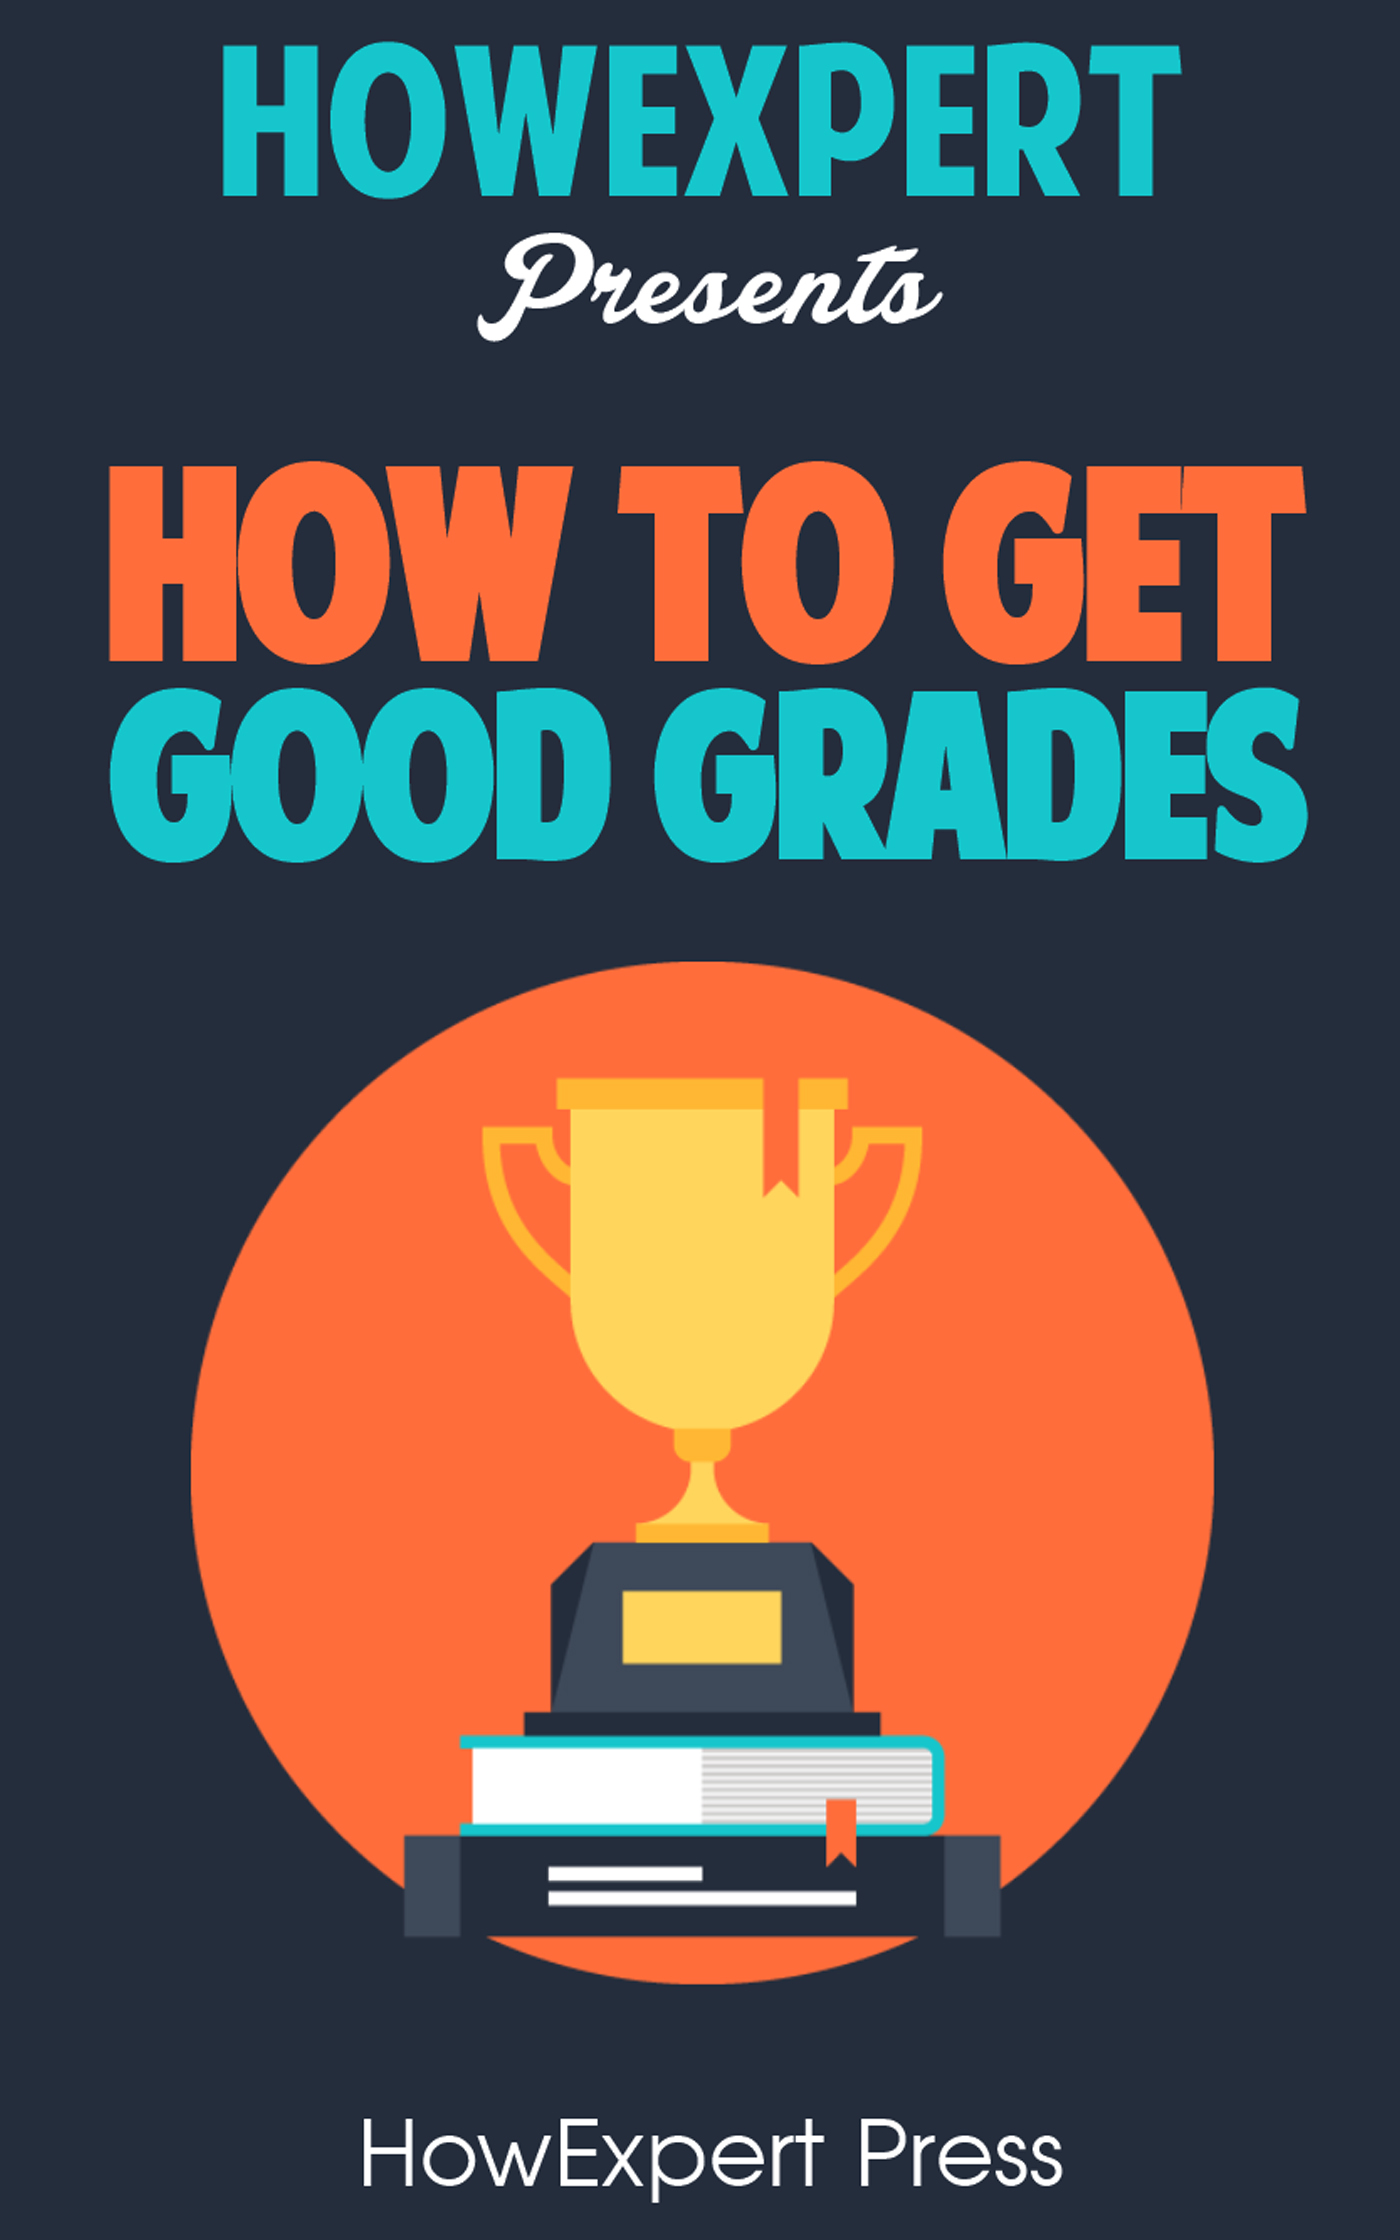 pressure to get good grades Many students have had late nights and felt the pressure to ace the sats, volunteer more than anyone else, get good grades, and somehow still be involved in clubs and activites after school for some of you, that meant intense athletic practices or late night drama rehearsals.